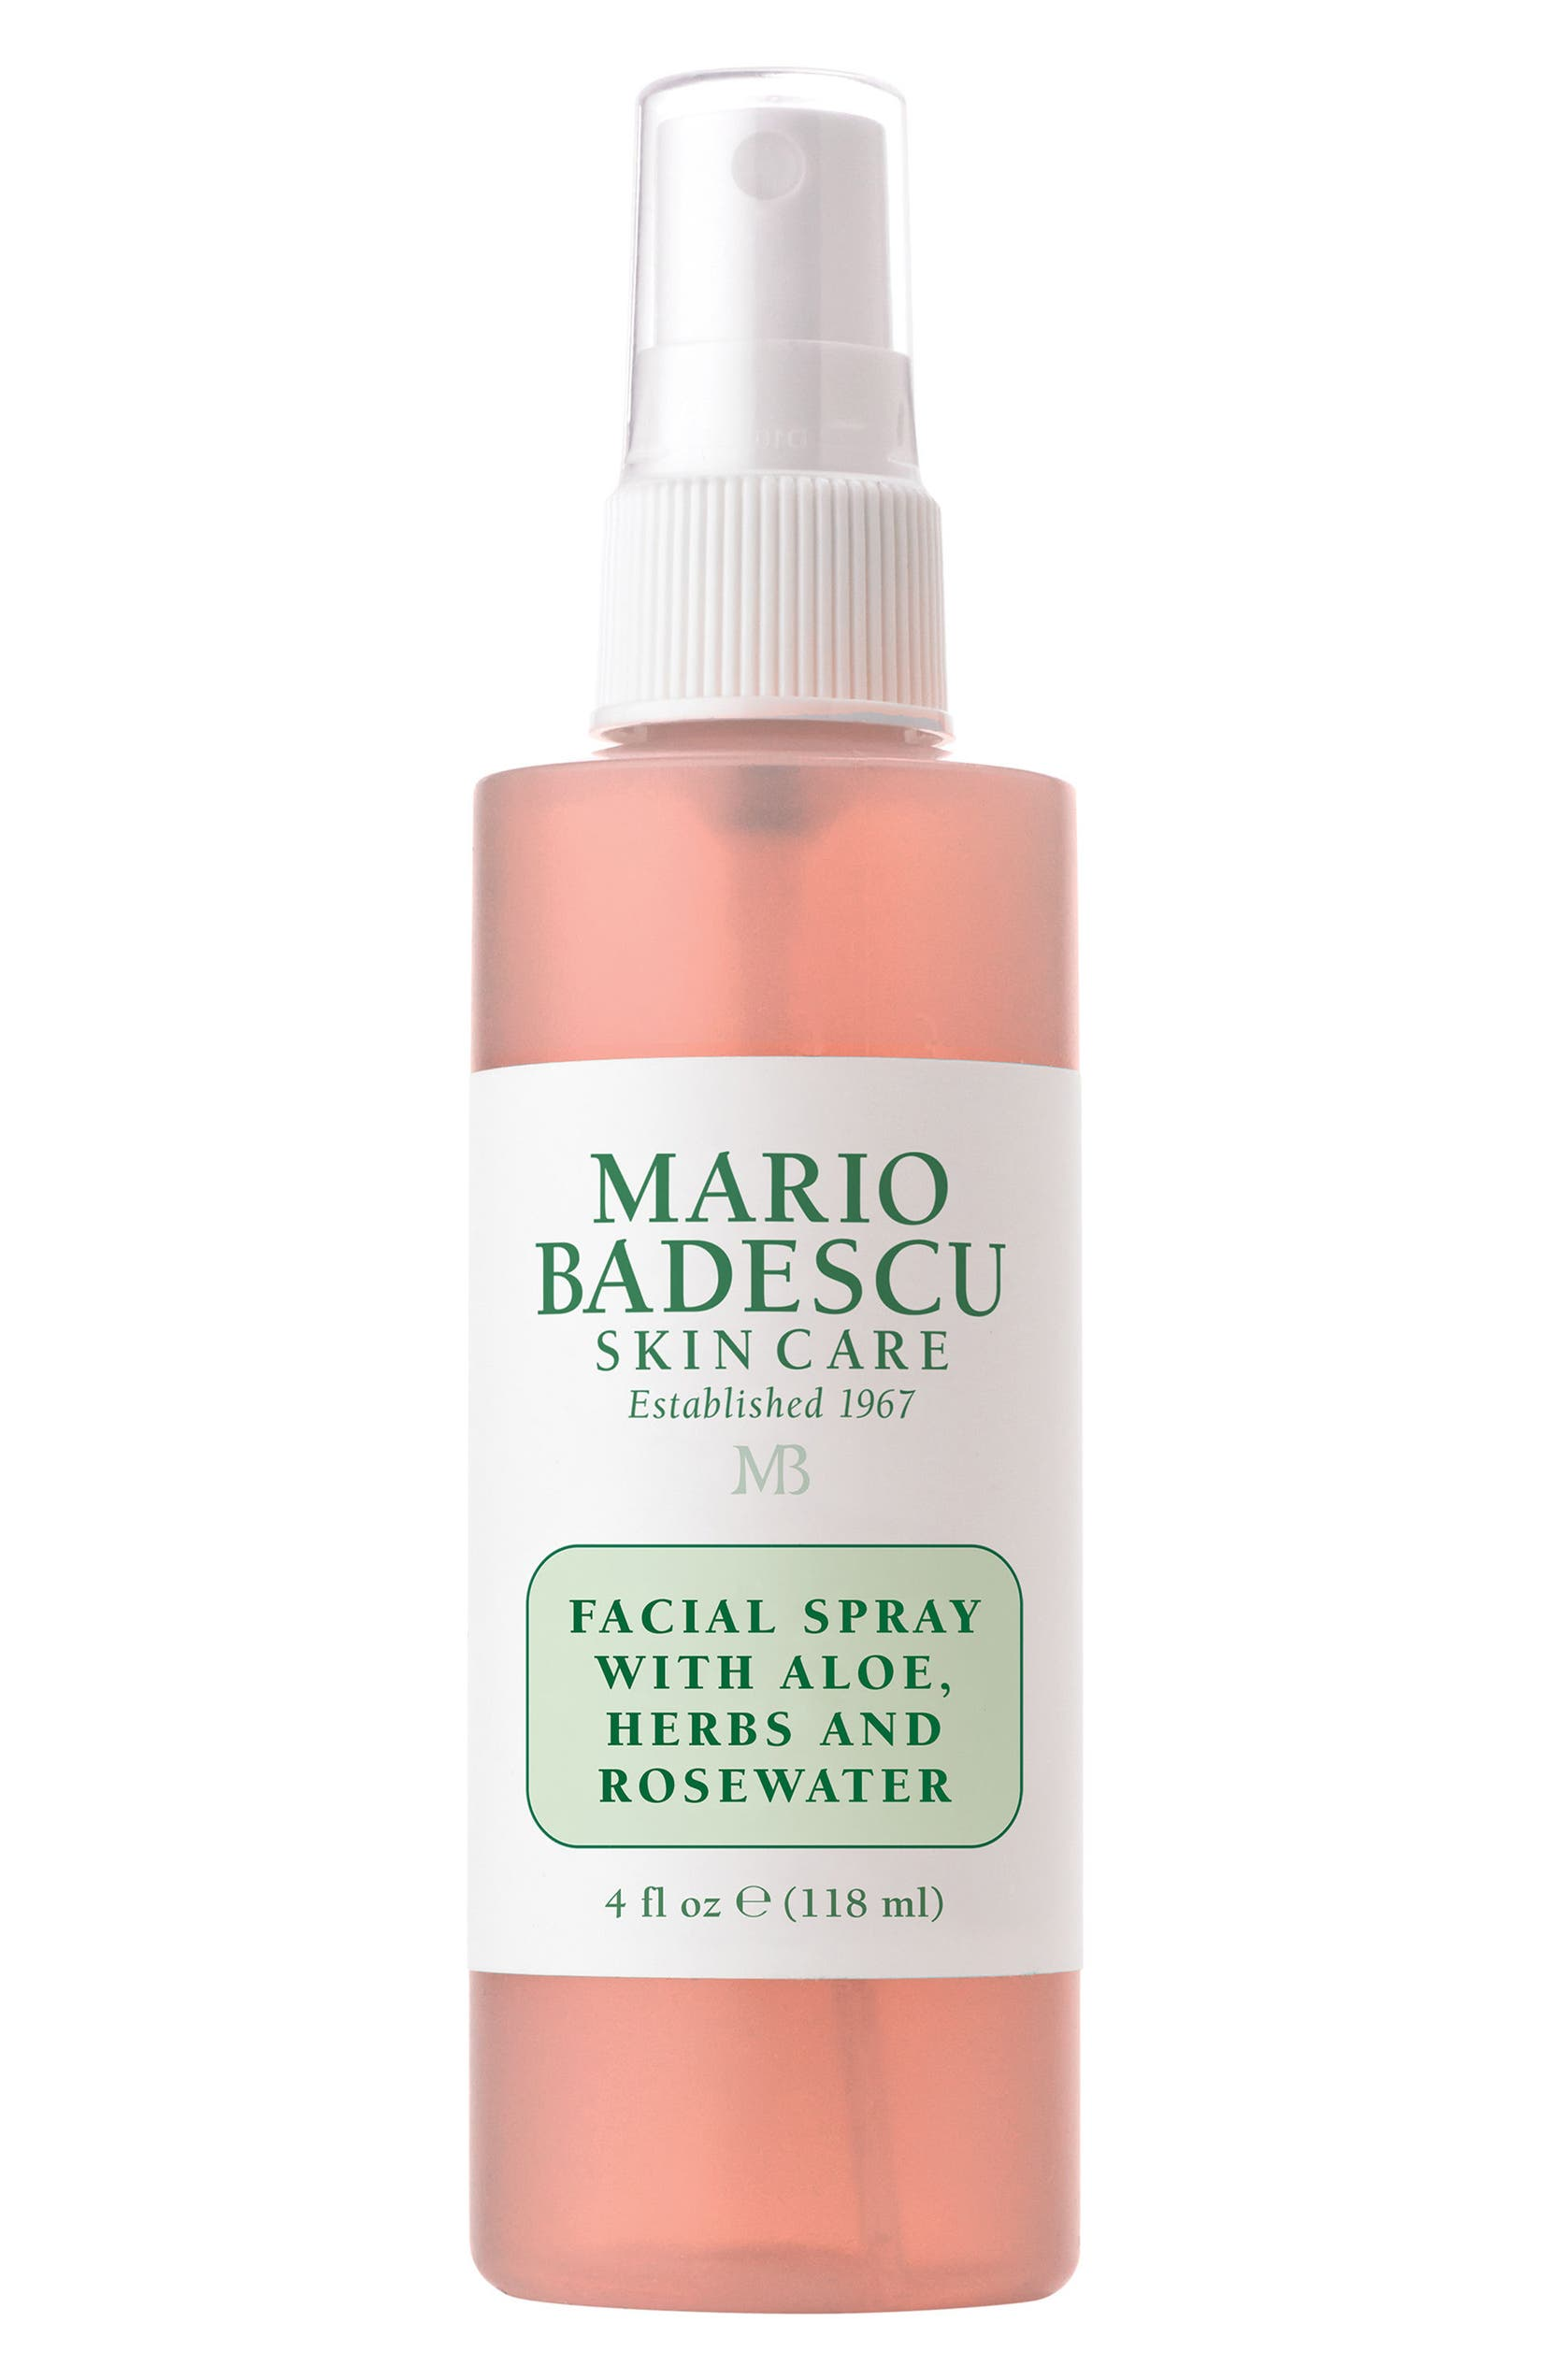 Image result for mario badescu facial spray rosewater